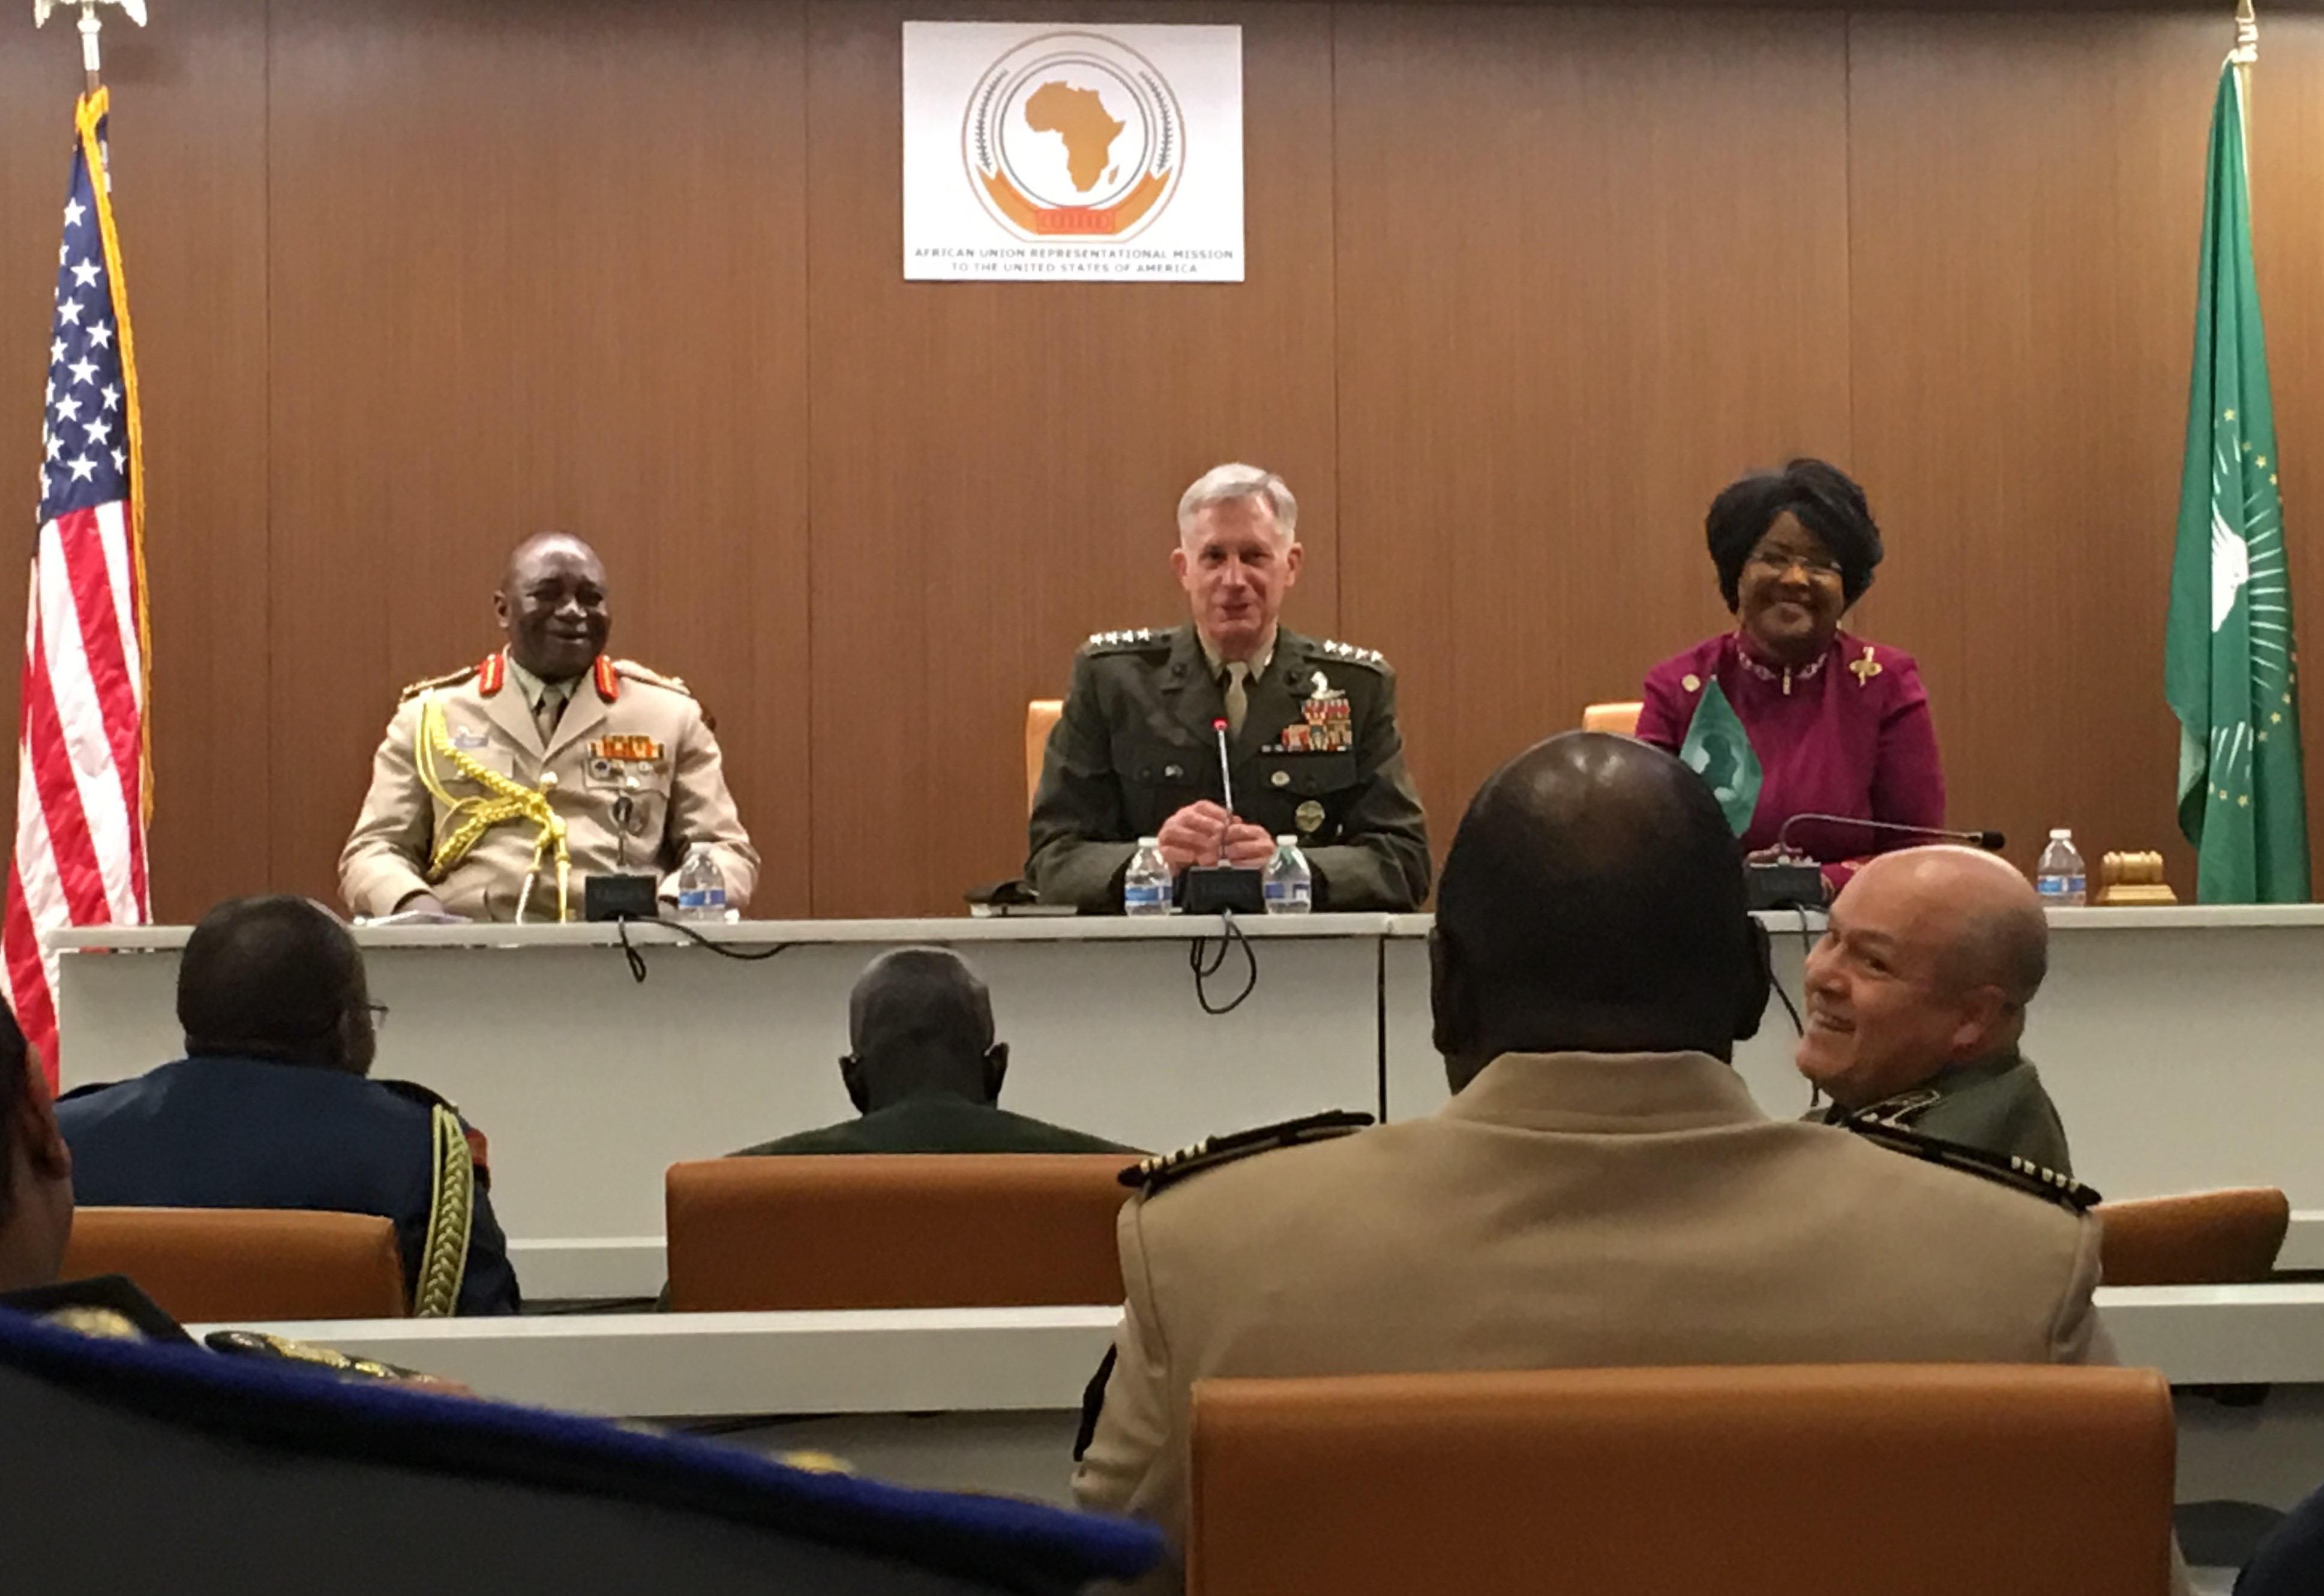 Marine Corps Gen. Thomas D. Waldhauser engaged with 21 defense attaches and the African Union Ambassador to the United States, Her Excellence Dr. Arikana Chihombori-Quao, in a wide-ranging discussion at the Africa House, in Washington D.C. While the U.S. National Defense Strategy and the U.S. National Security Strategy prioritize Great Power Competition, violent extremist organizations, security challenges, and U.S. commitment to the region were on the minds of African partners during this engagement. Waldhauser said U.S. Africa Command remains committed to building partner capacity and being a partner of choice for Africans.